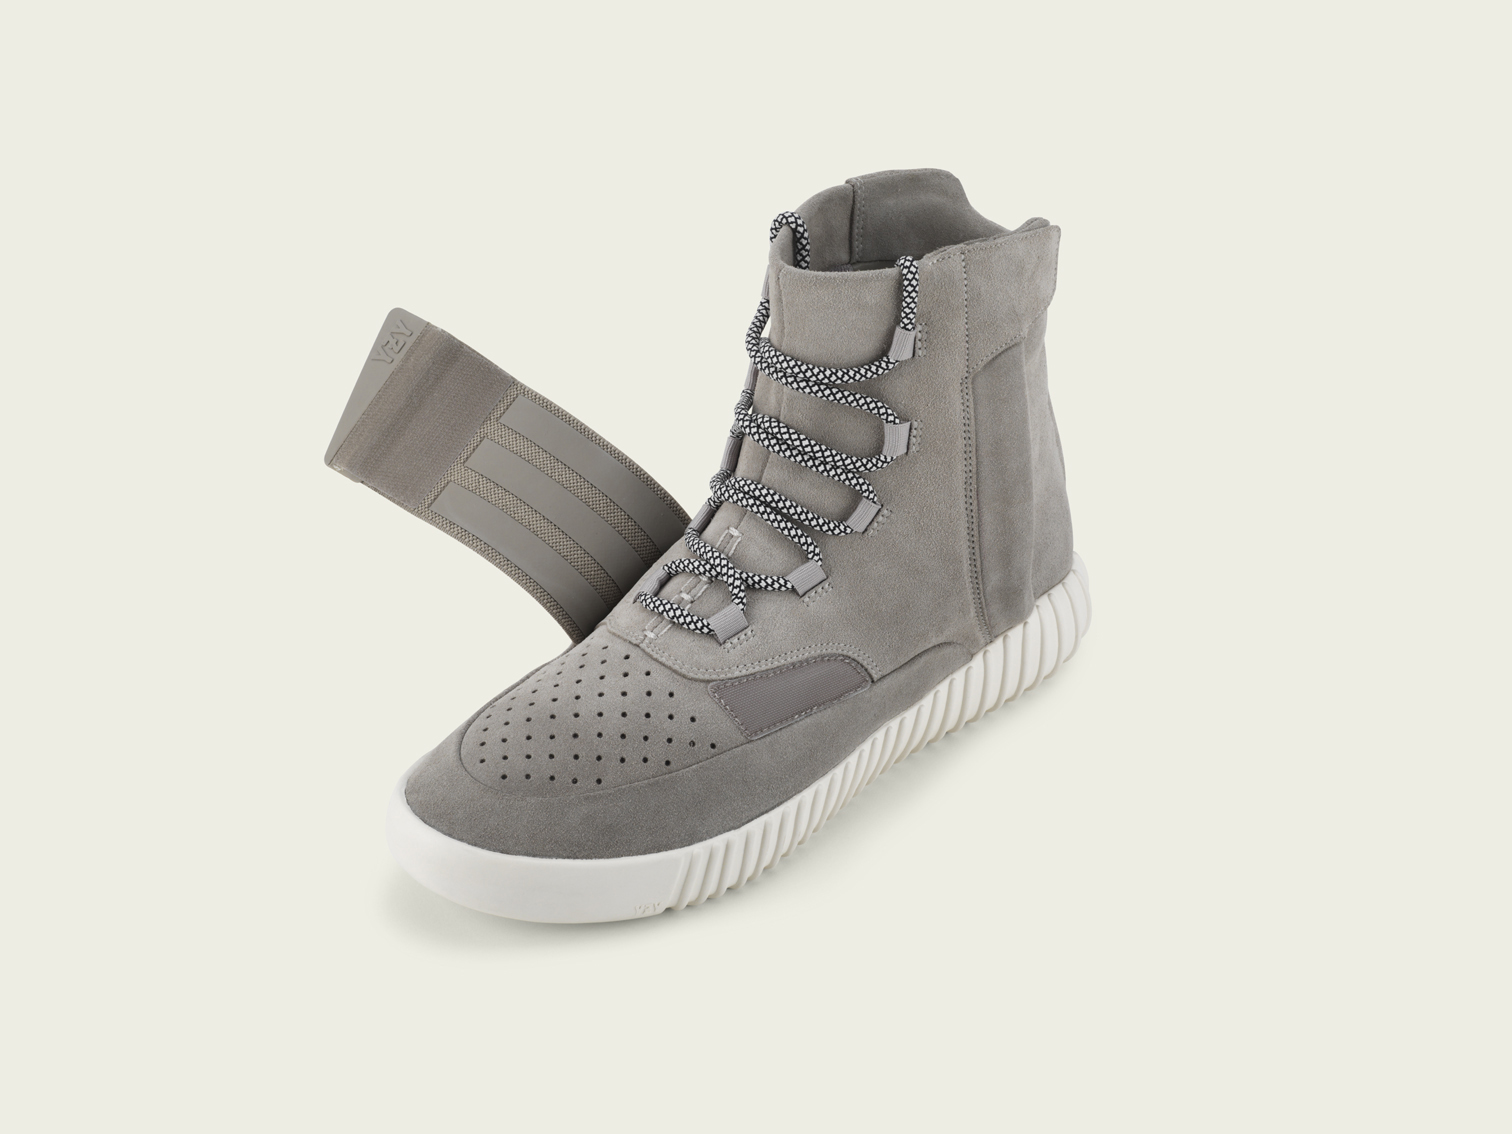 adidas air yeezy boots